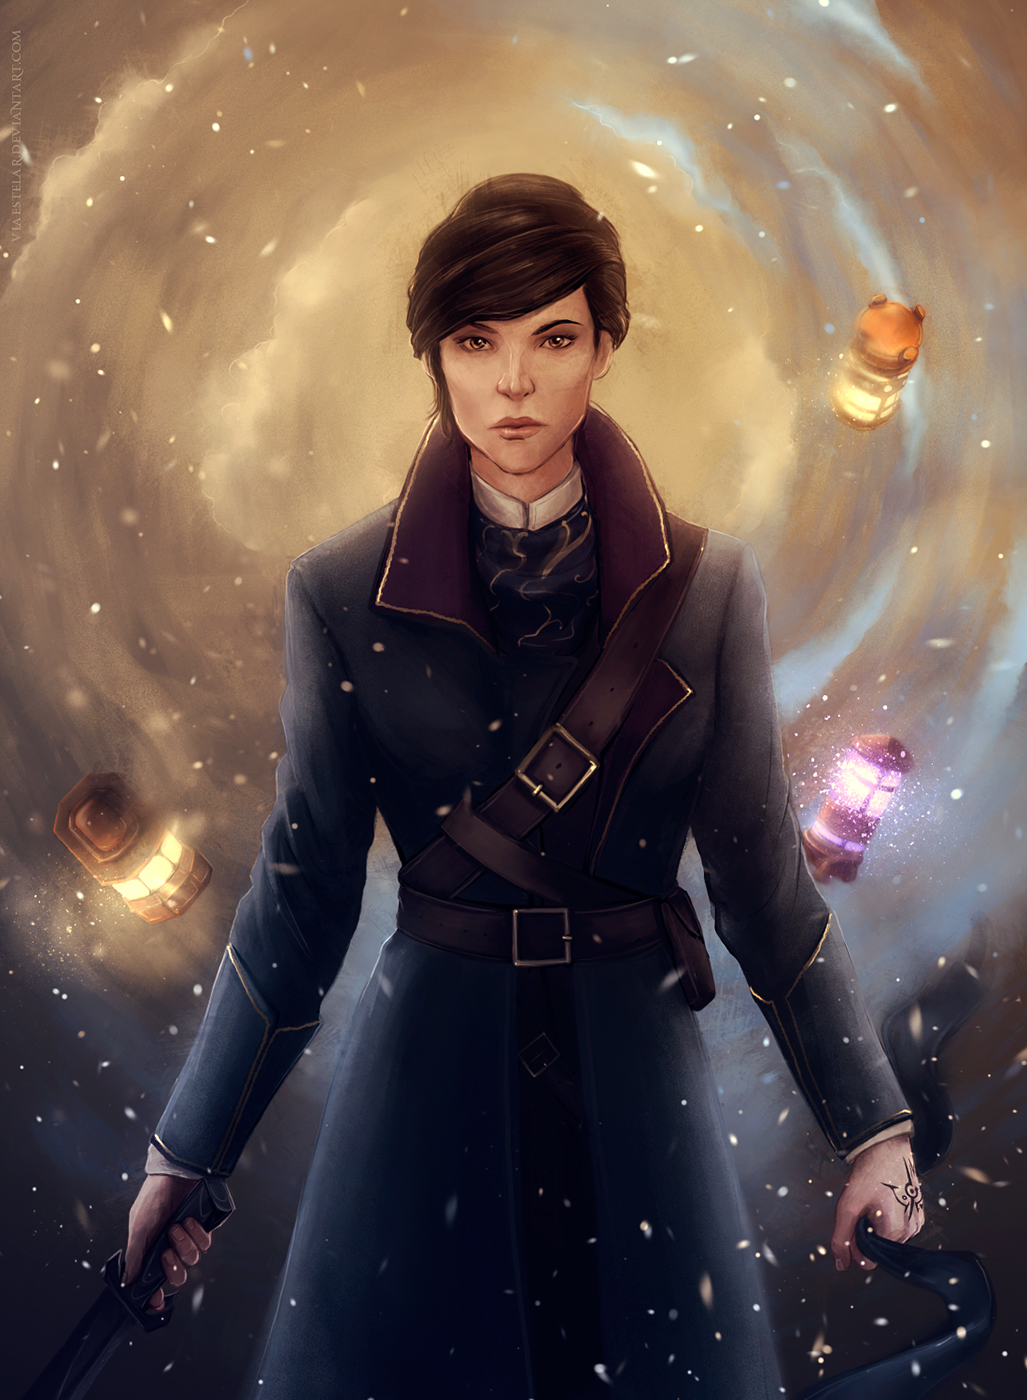 All Hail Emily - Dishonored 2